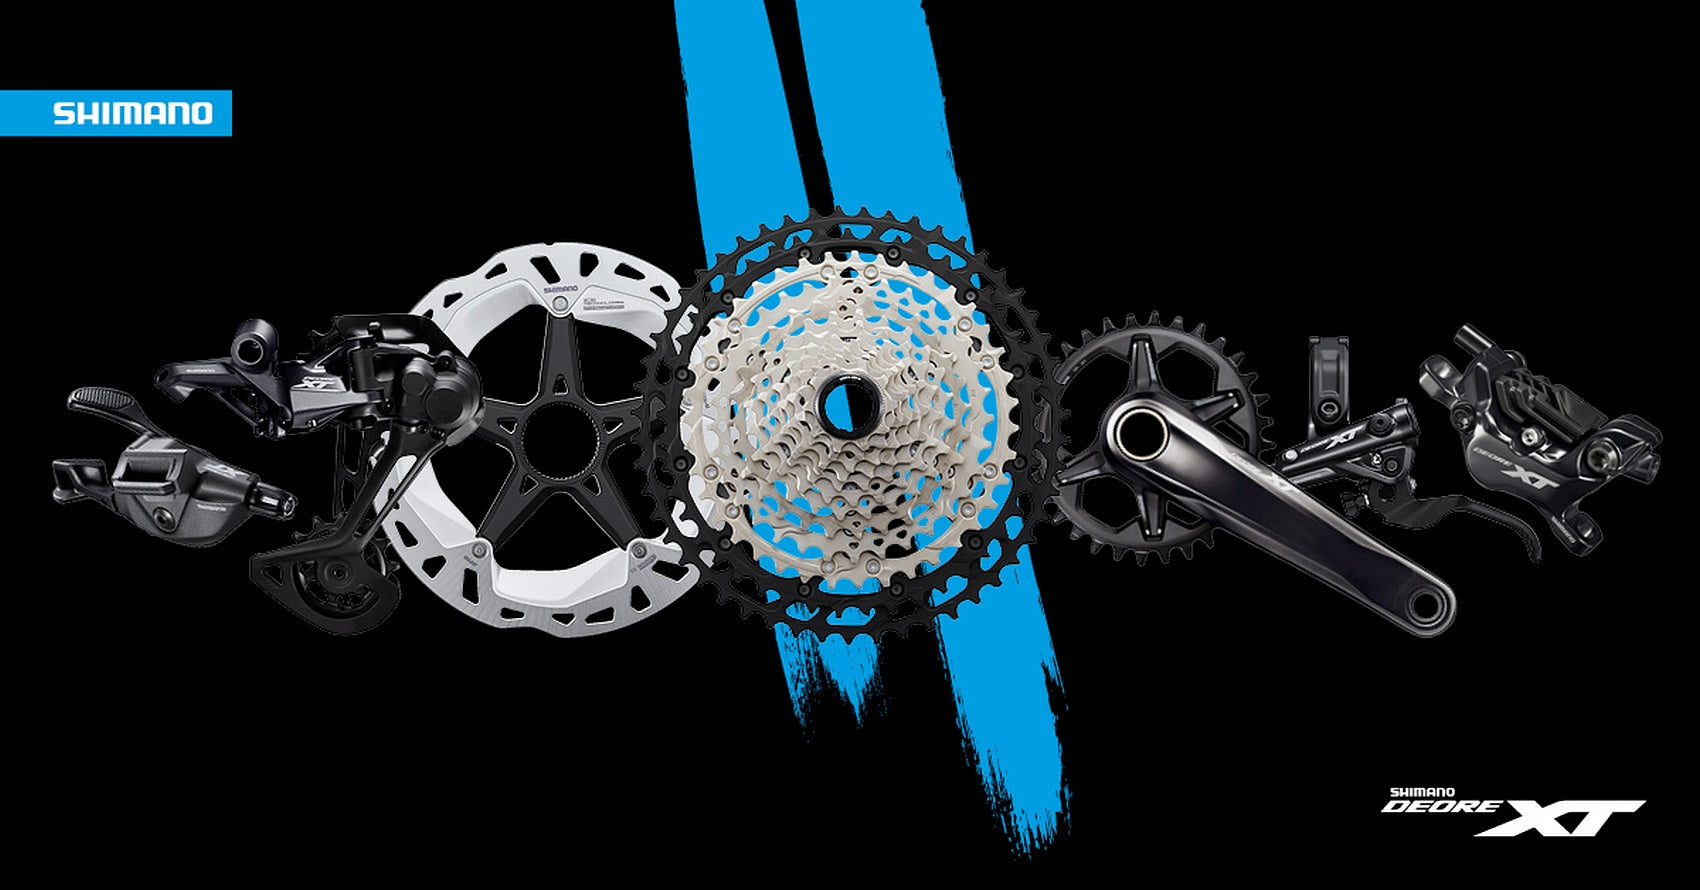 Shimano XT M8100 12-speed groupset, all you need to know.